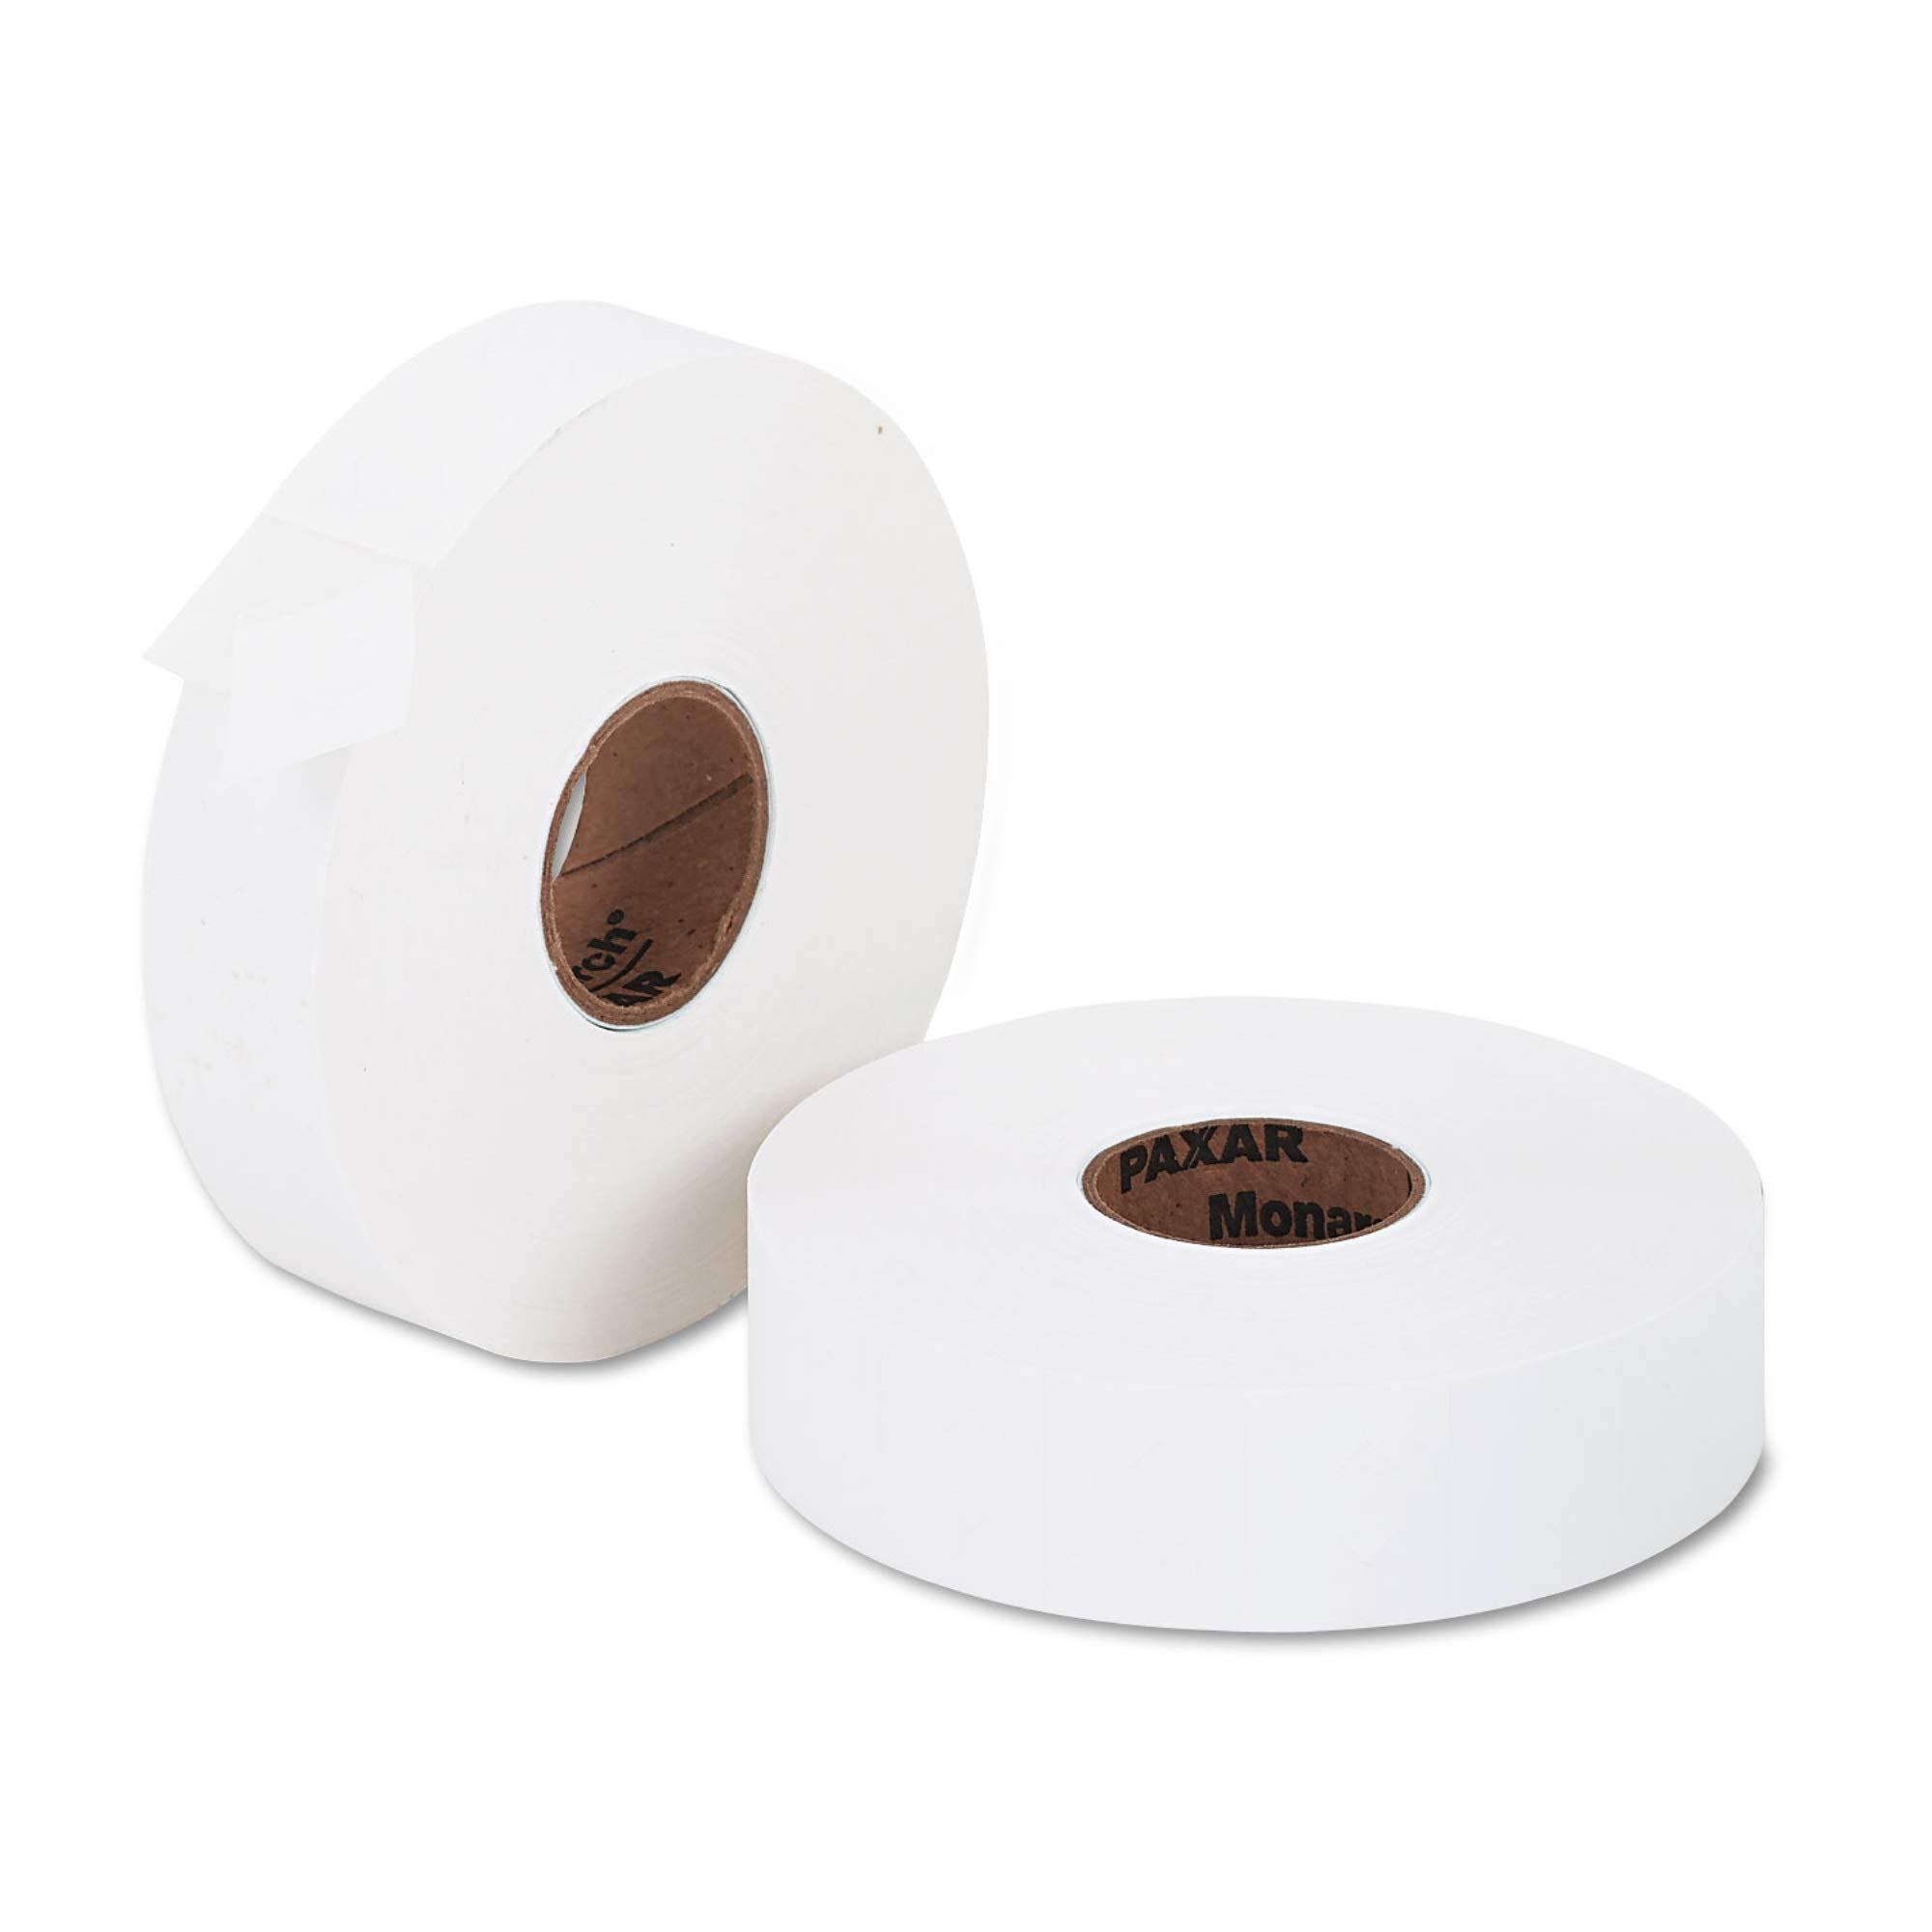 """Monarch Easy-Load 1136 Two-Line Pricemarker Labels, 5/8"""""""" x 7/8"""""""" - 3,500 per Pack (White)"""